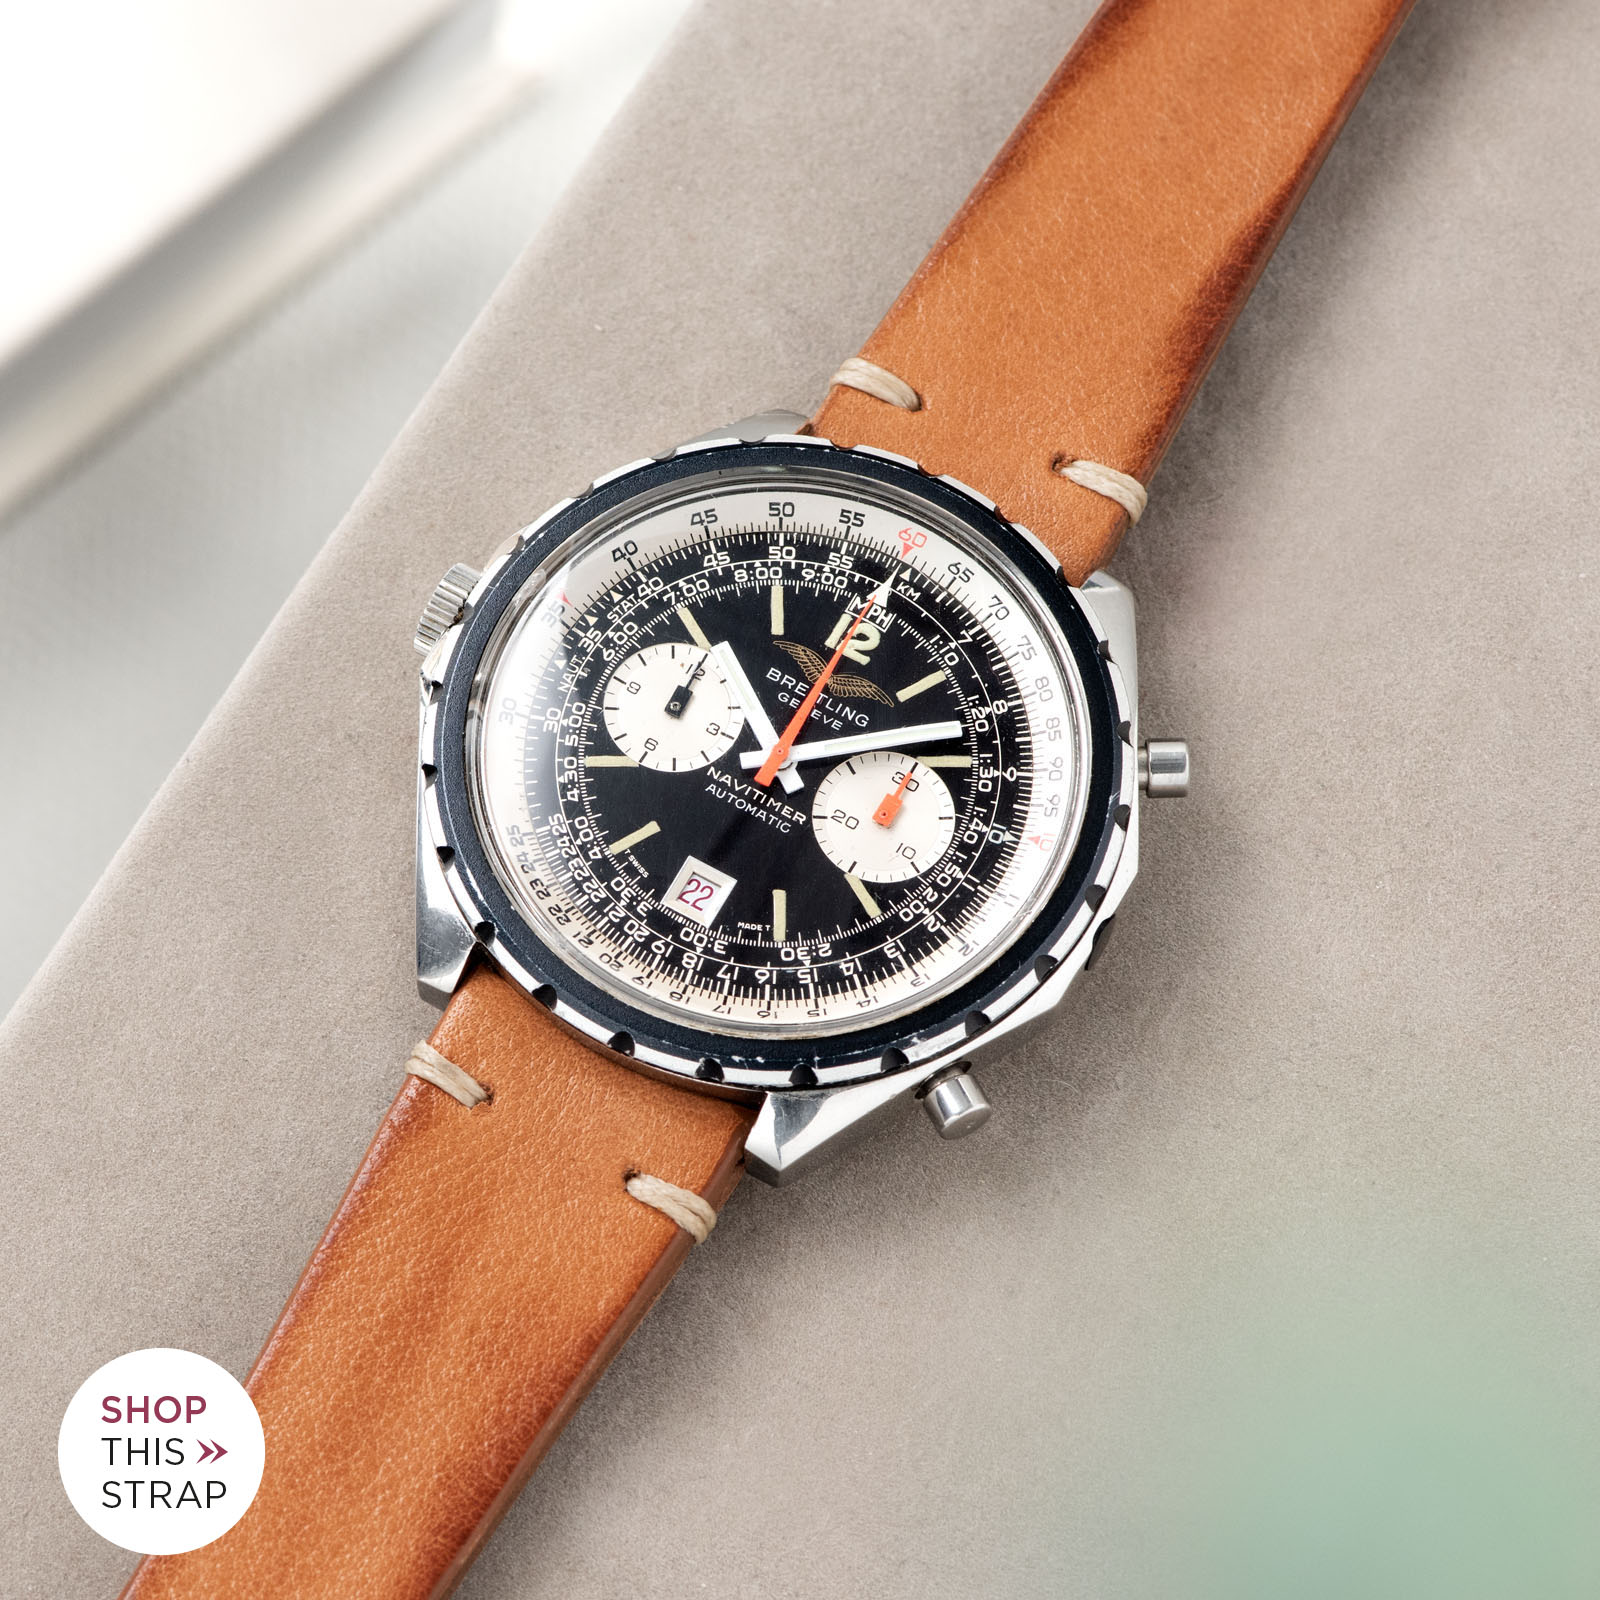 Bulang and Sons_Strapguide_Breitling Navitimer ref issued to iraqi air force ref 1806_Caramel Brown Leather Watch Strap _005